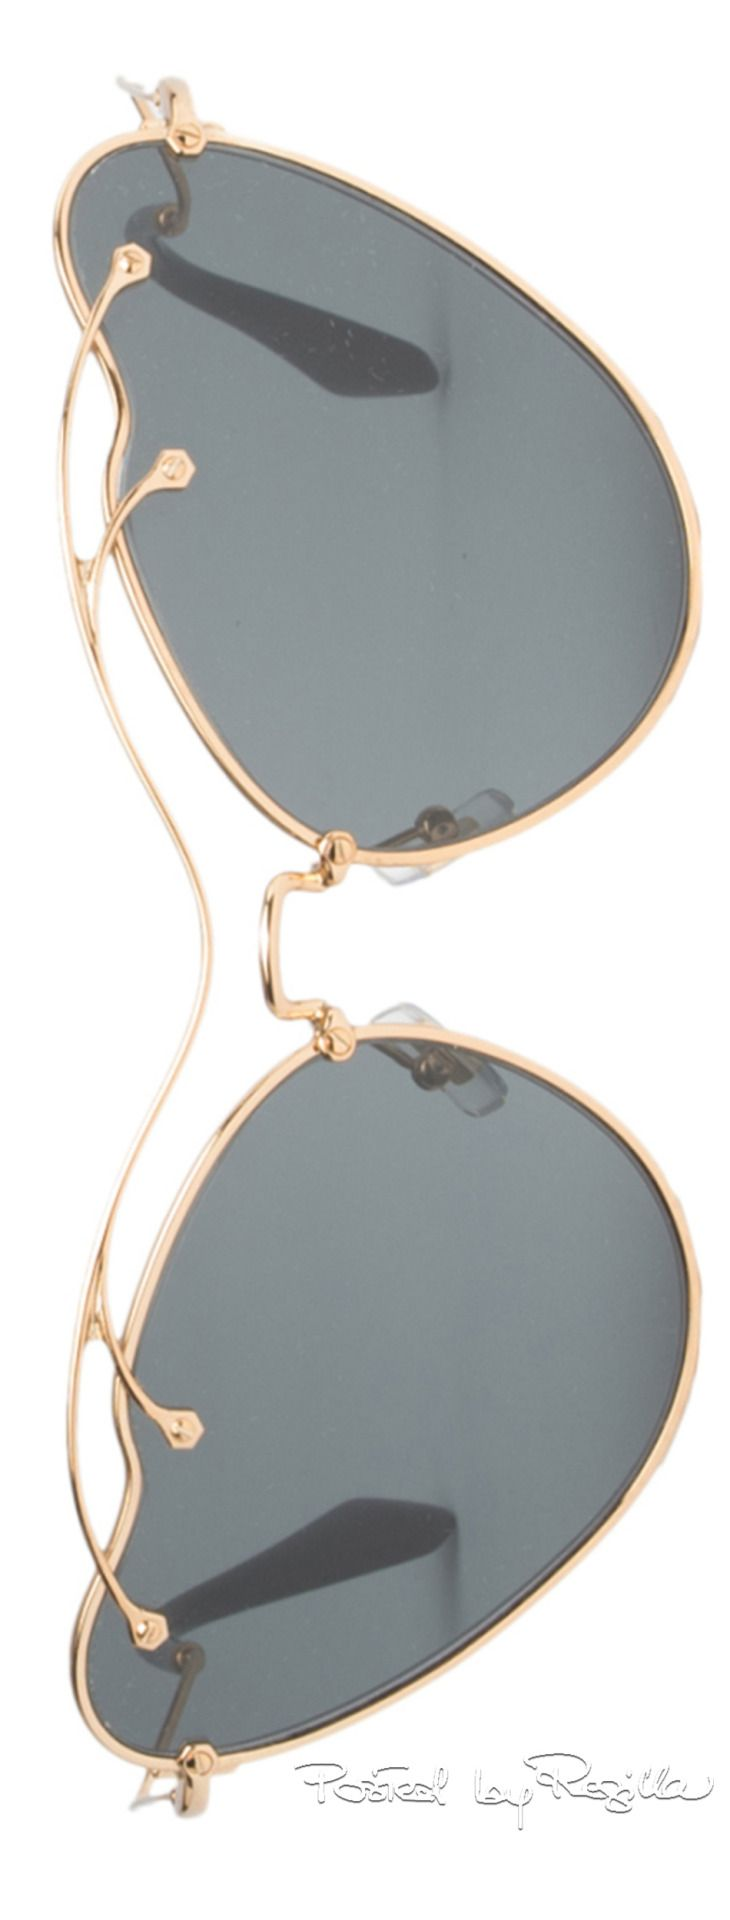 25 best ideas about miu miu glasses on pinterest eyewear cat eye glasses and glasses frames. Black Bedroom Furniture Sets. Home Design Ideas